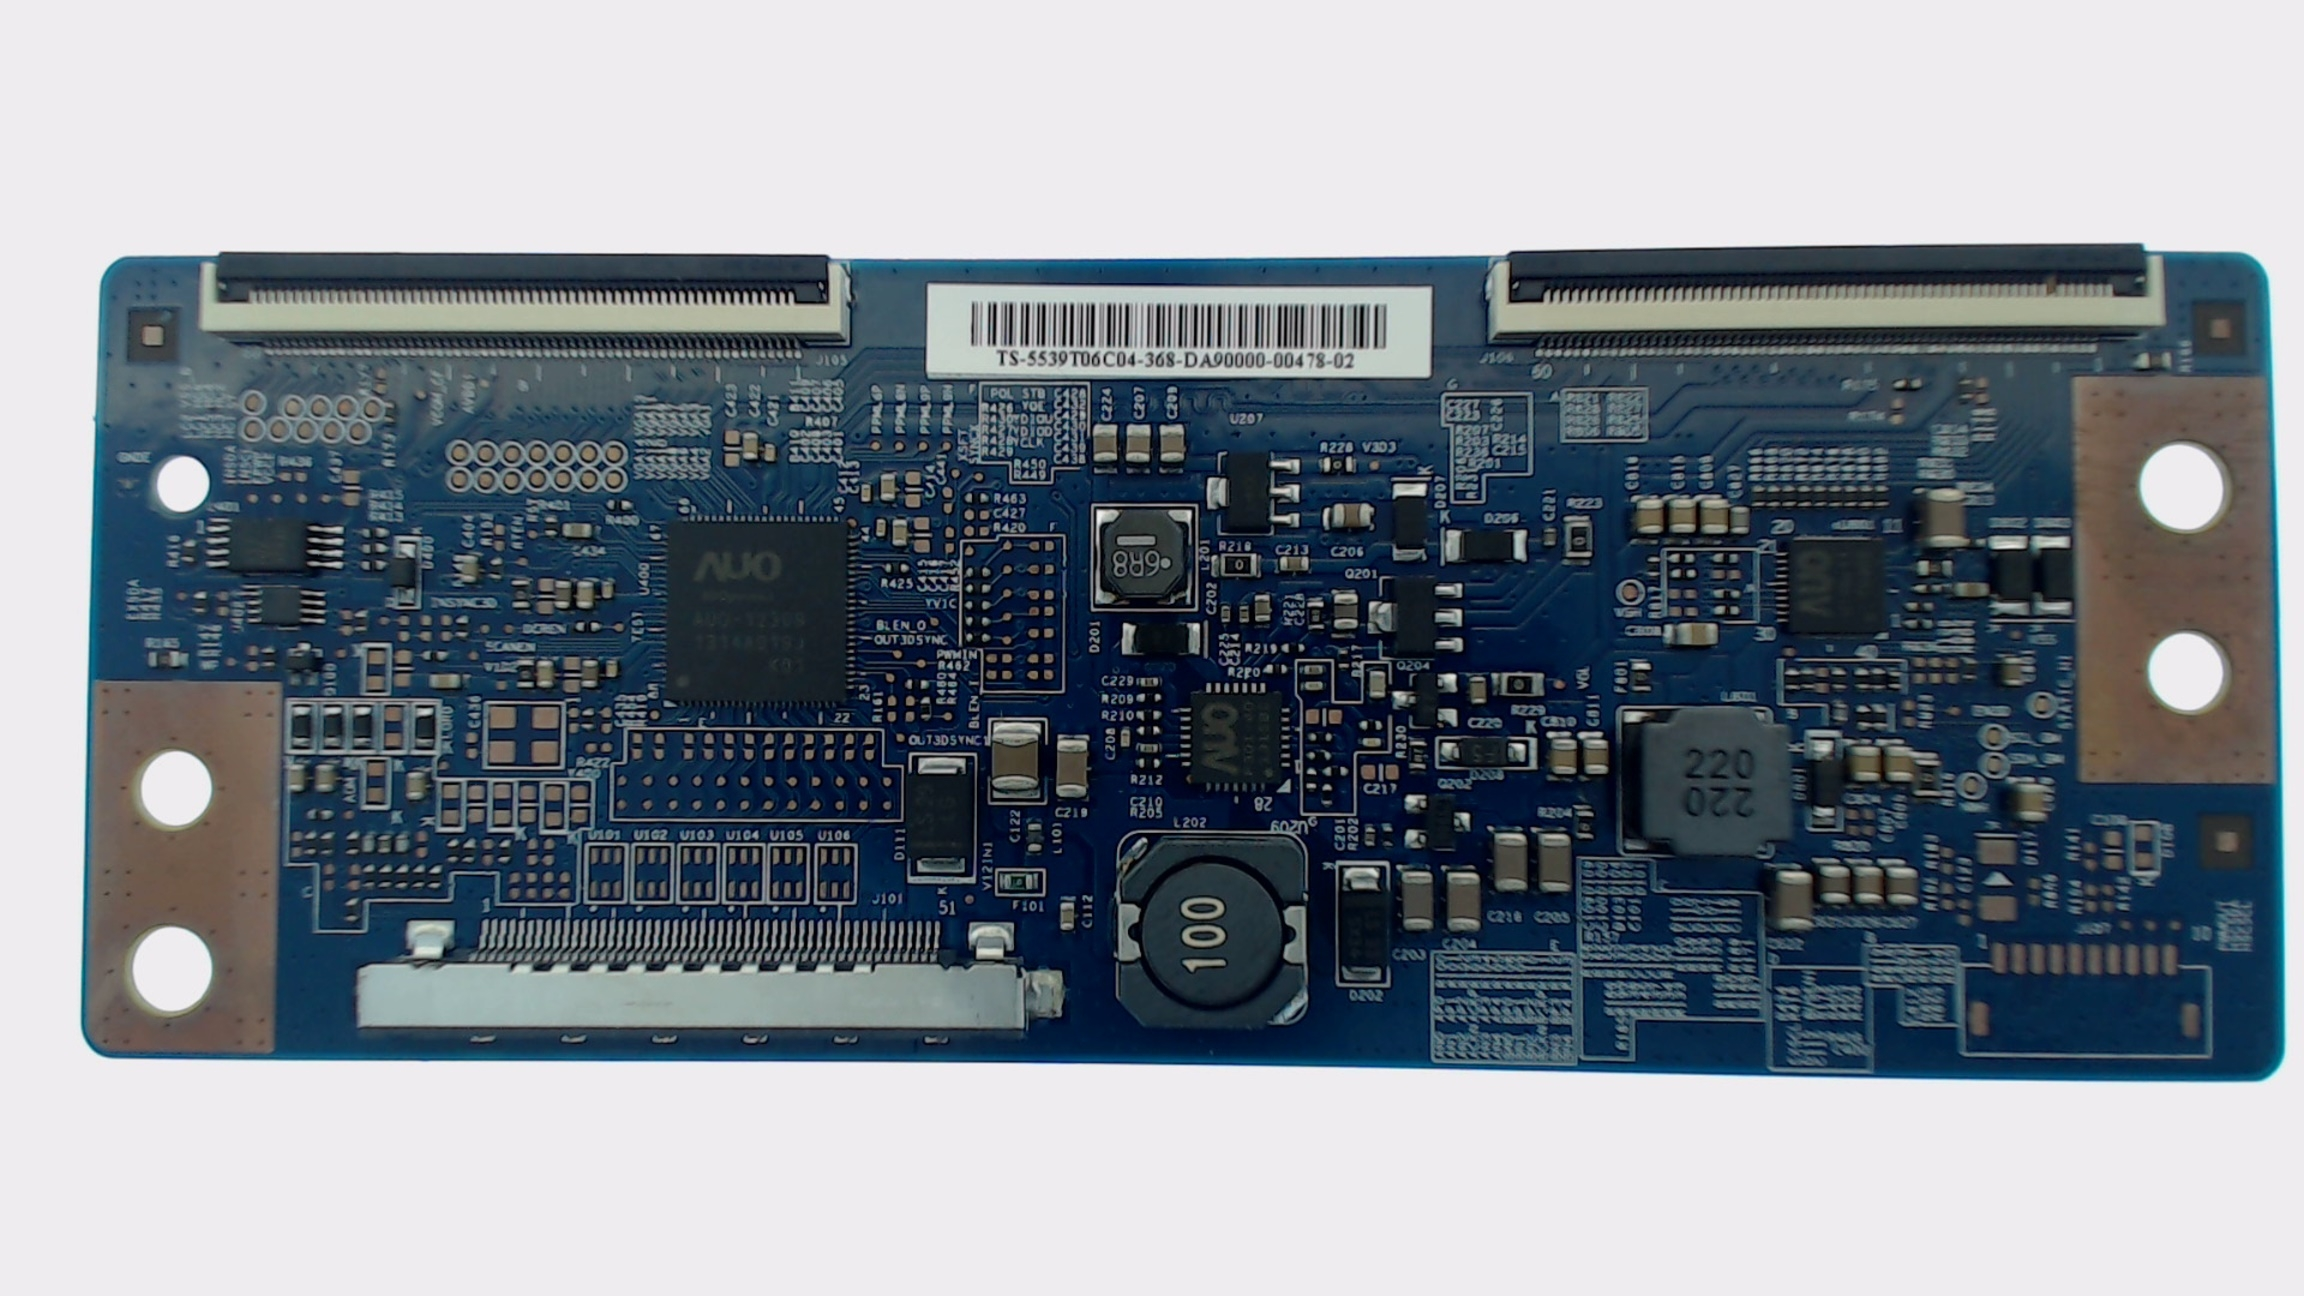 LG TV Model 39LN5700-UH T-Con Board Part Number 55.39T06.C04